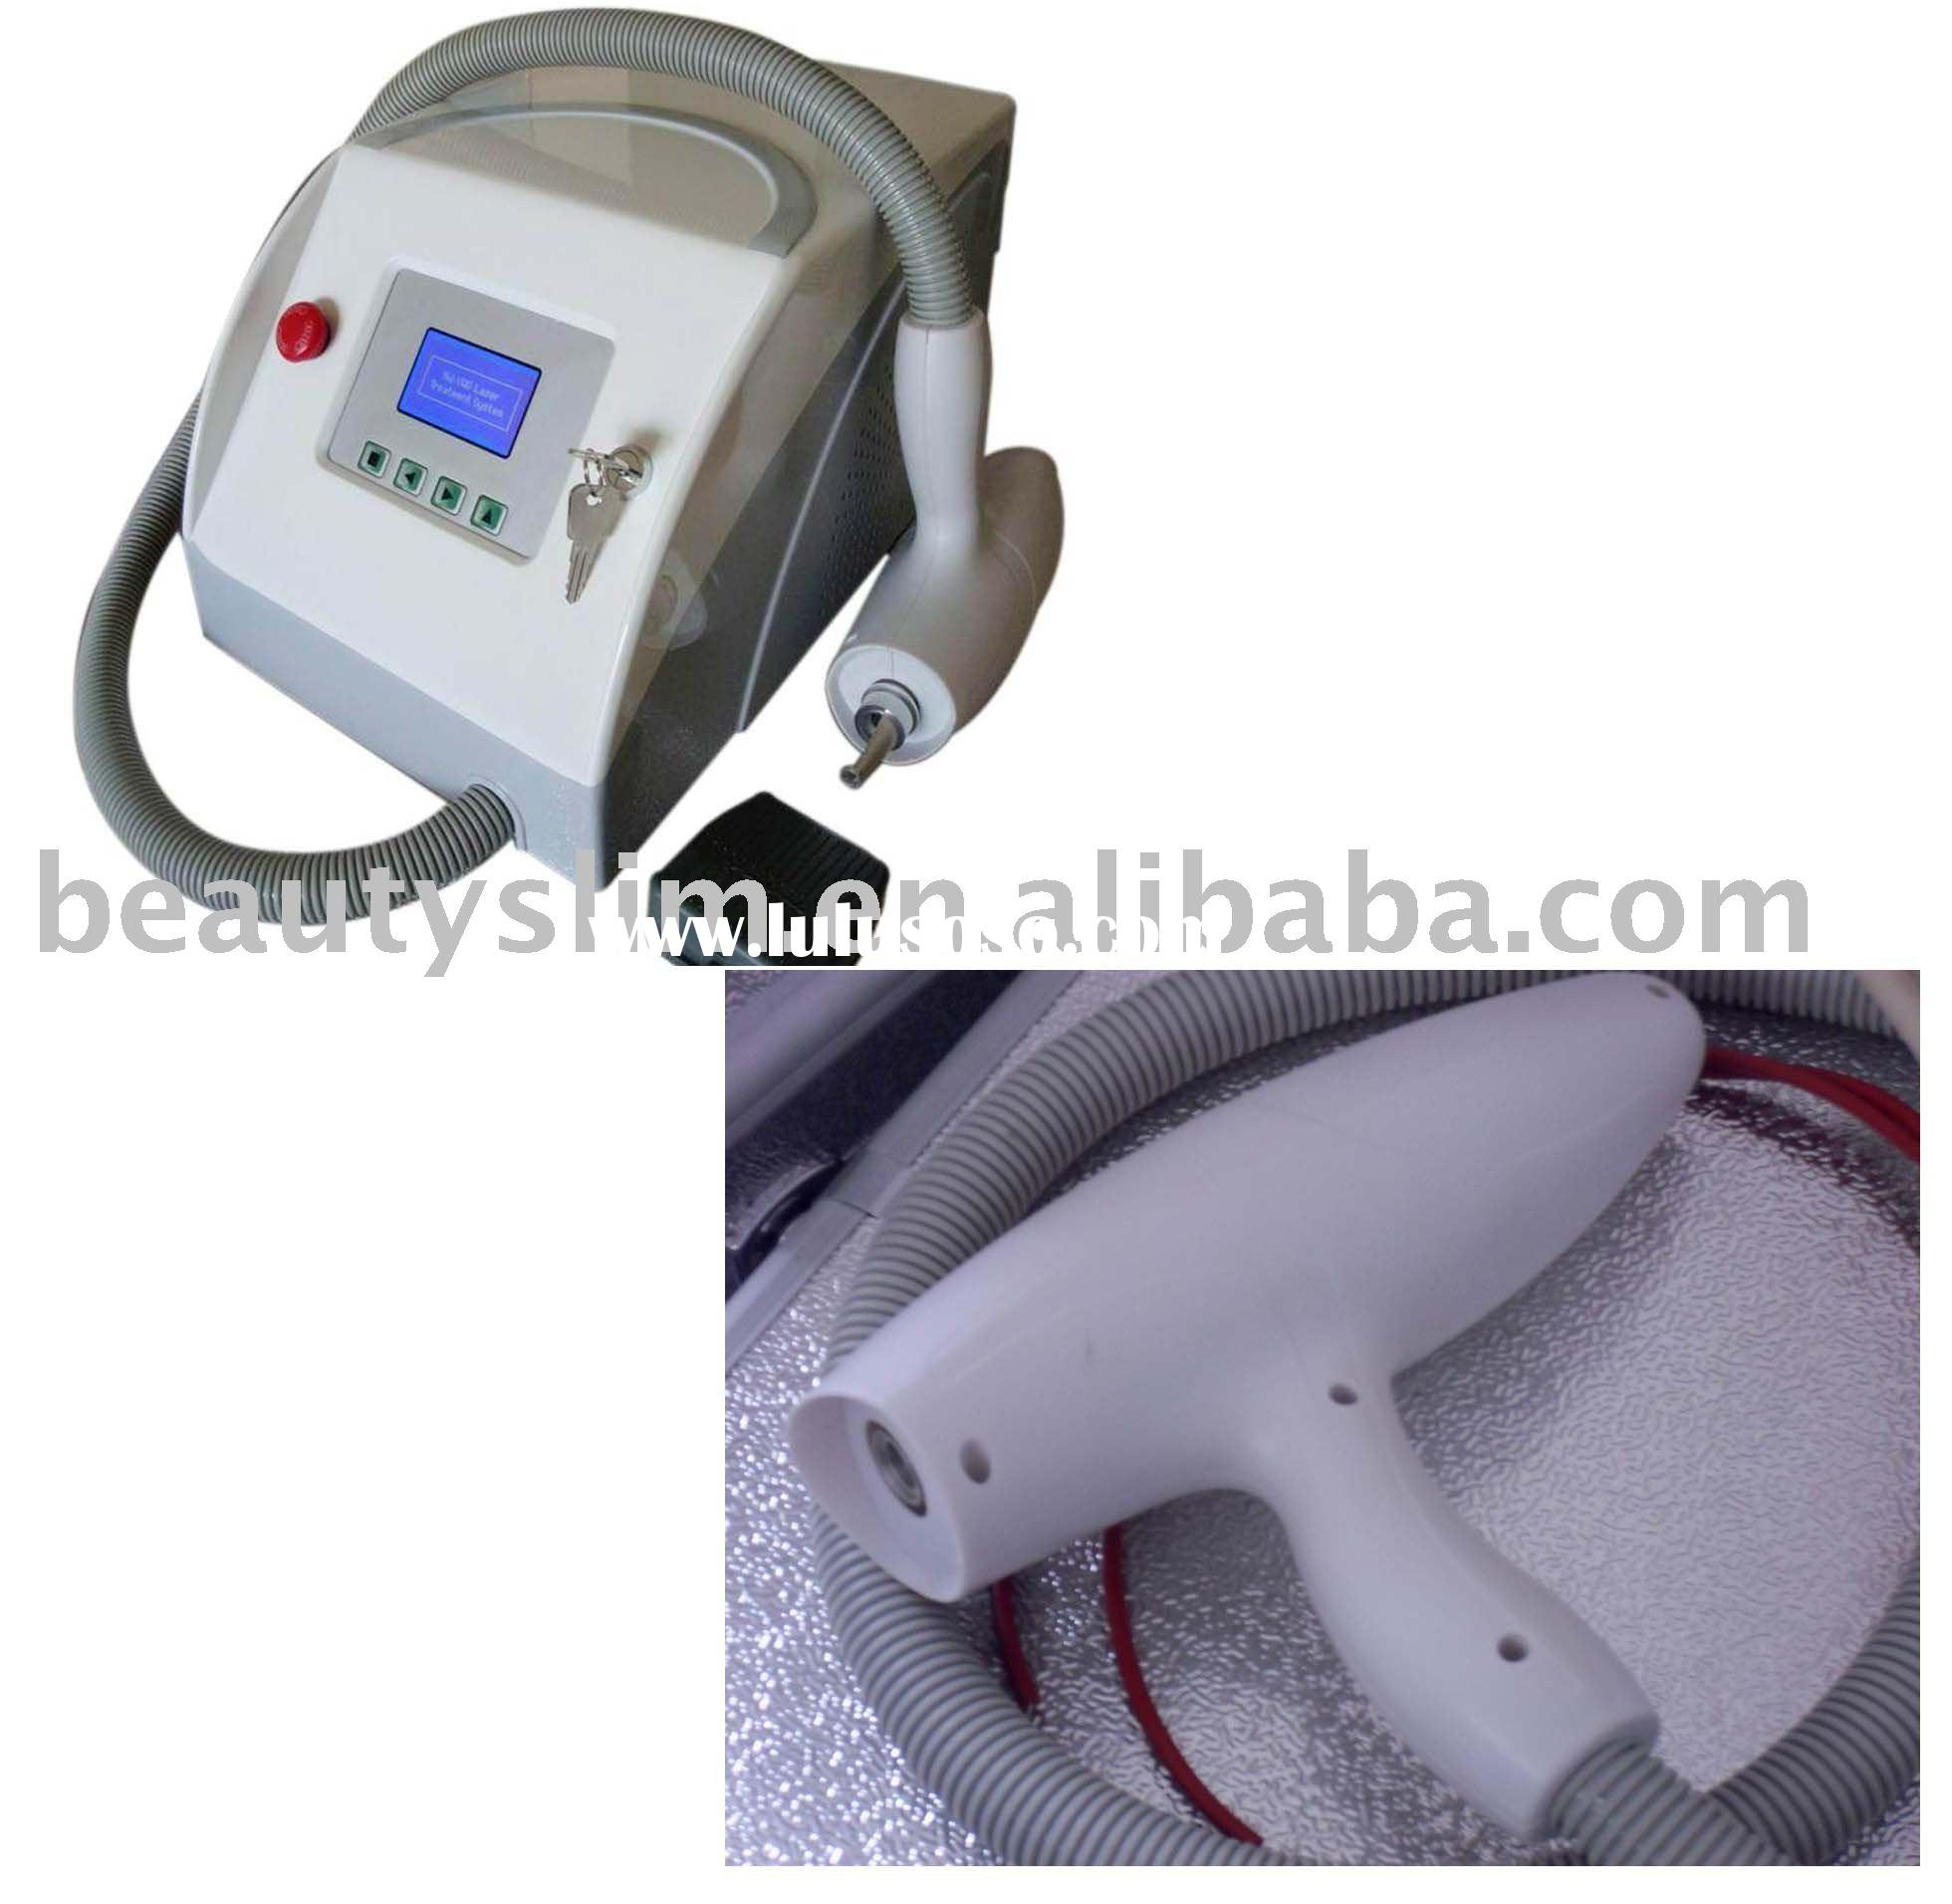 Portable Q switch ND-YAG Laser ( with ruby) tattoo removal beauty equipment- CE approved + 3 year wa